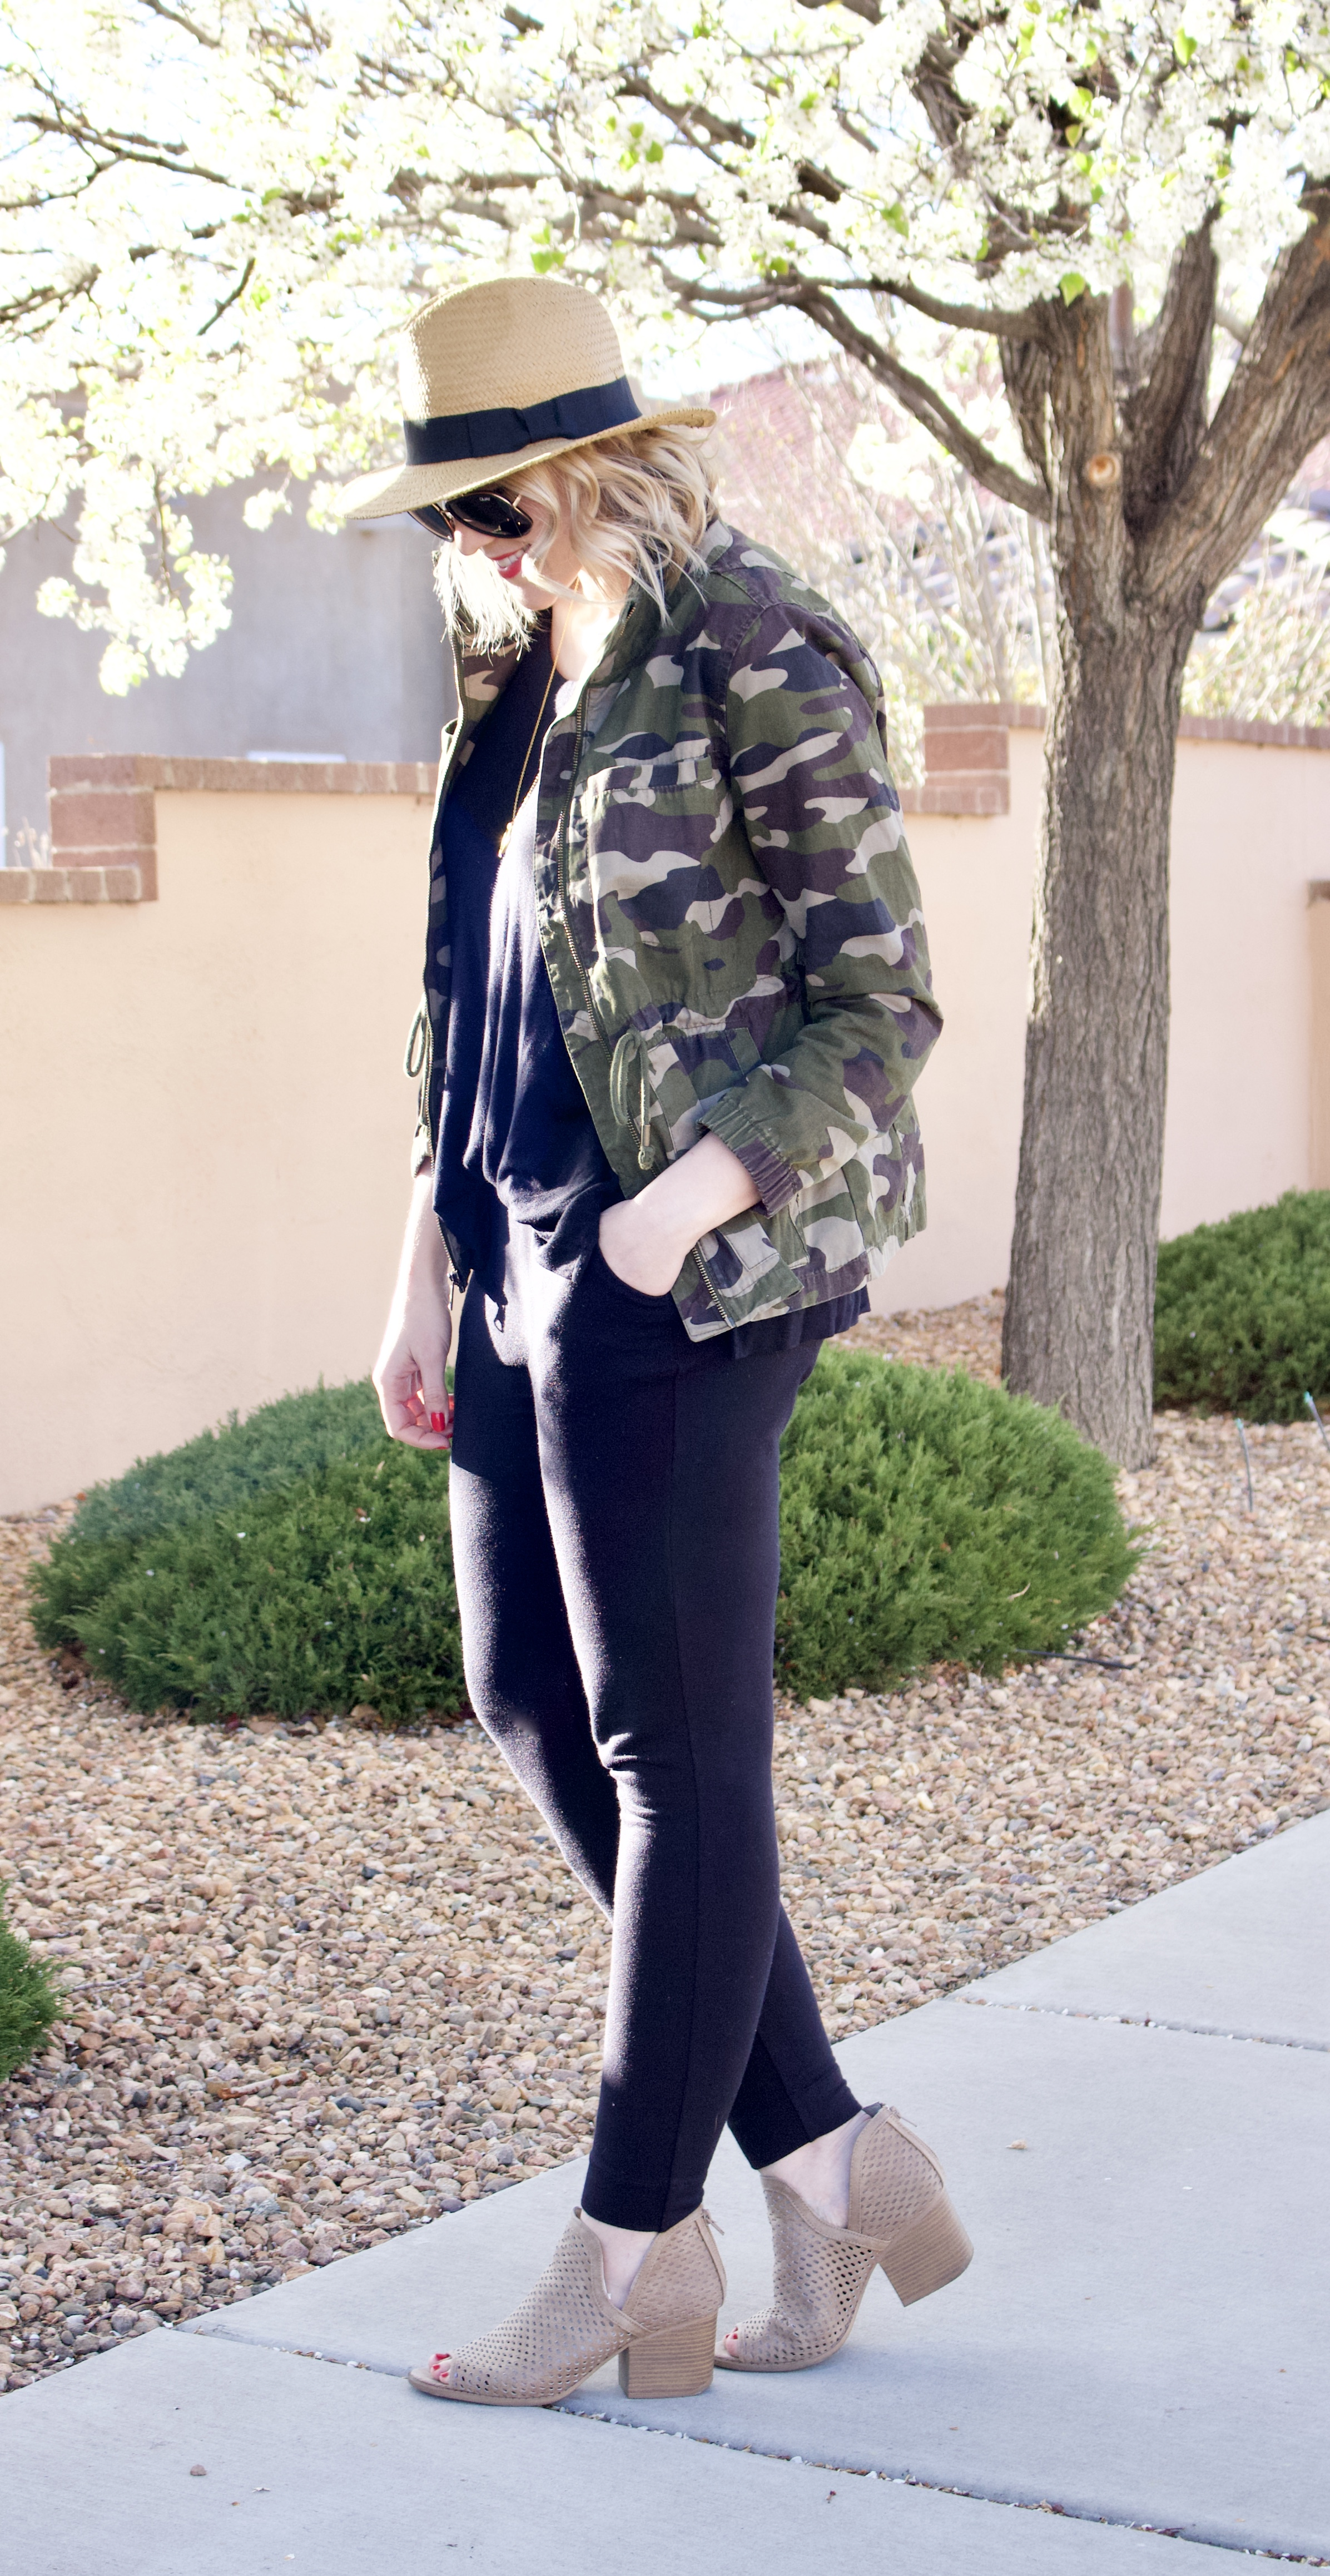 camo jacket old navy twill jacket #oldnavystyle #camojacket #camoprint